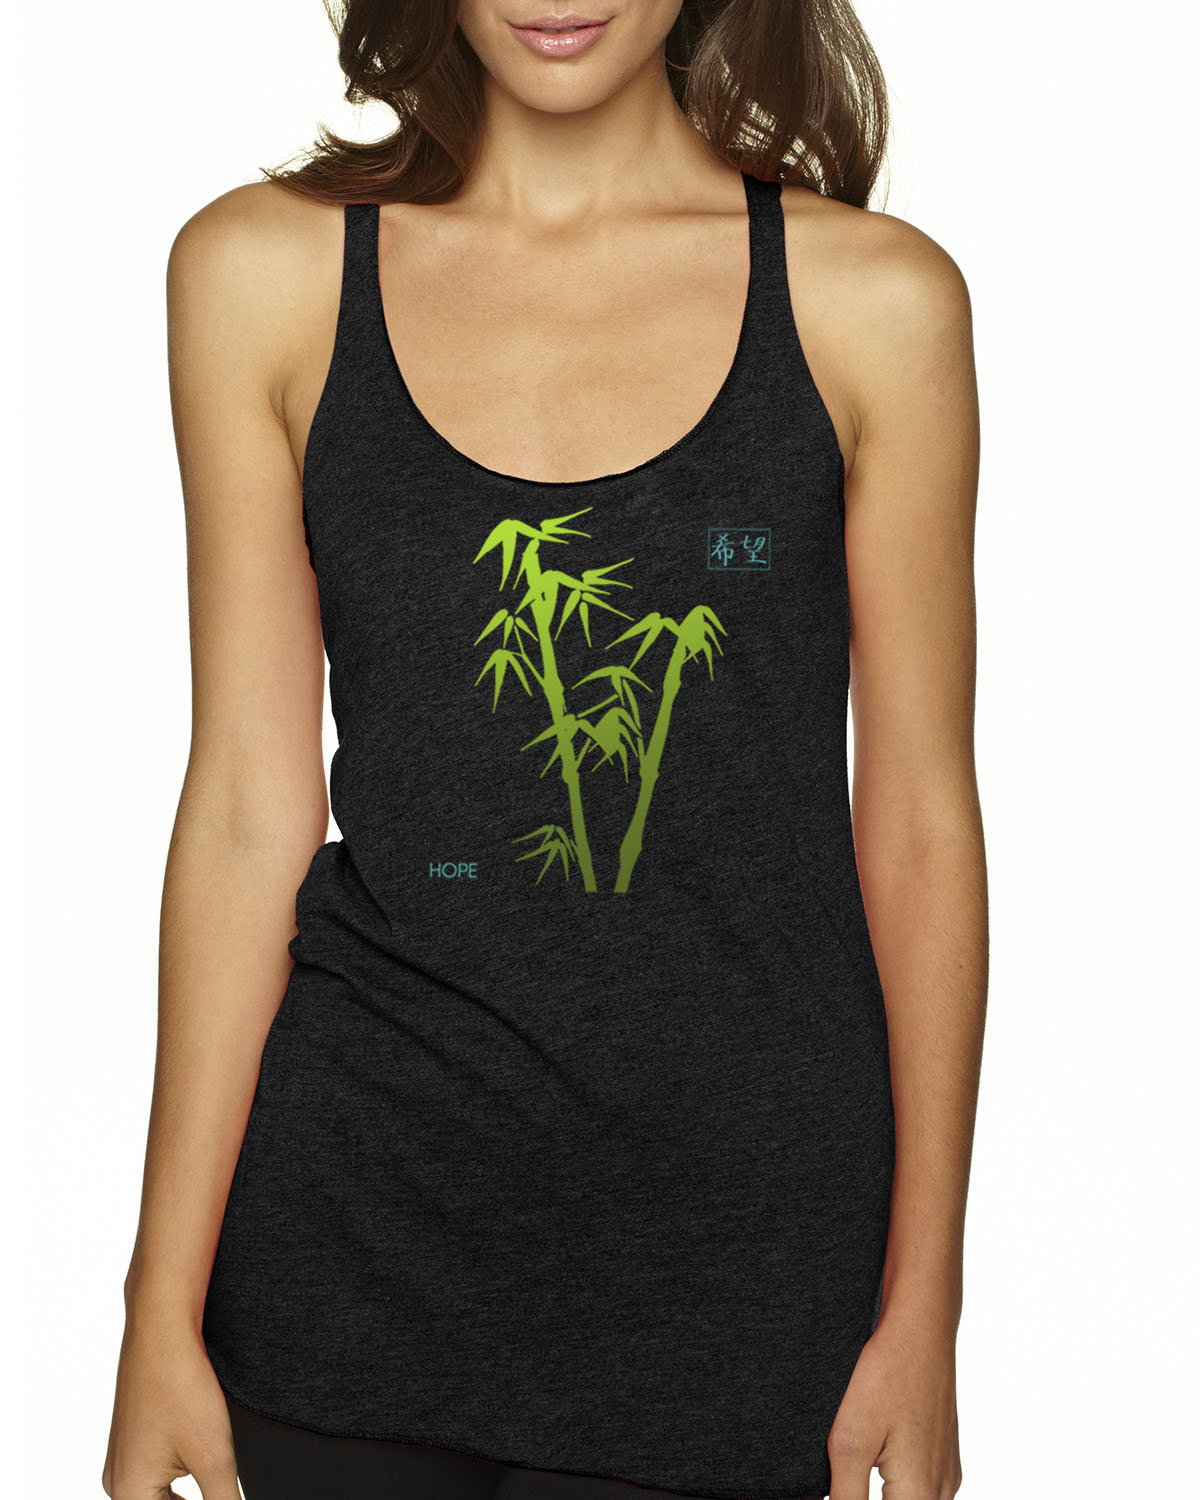 Racer-back tri-blend tank top (Black)